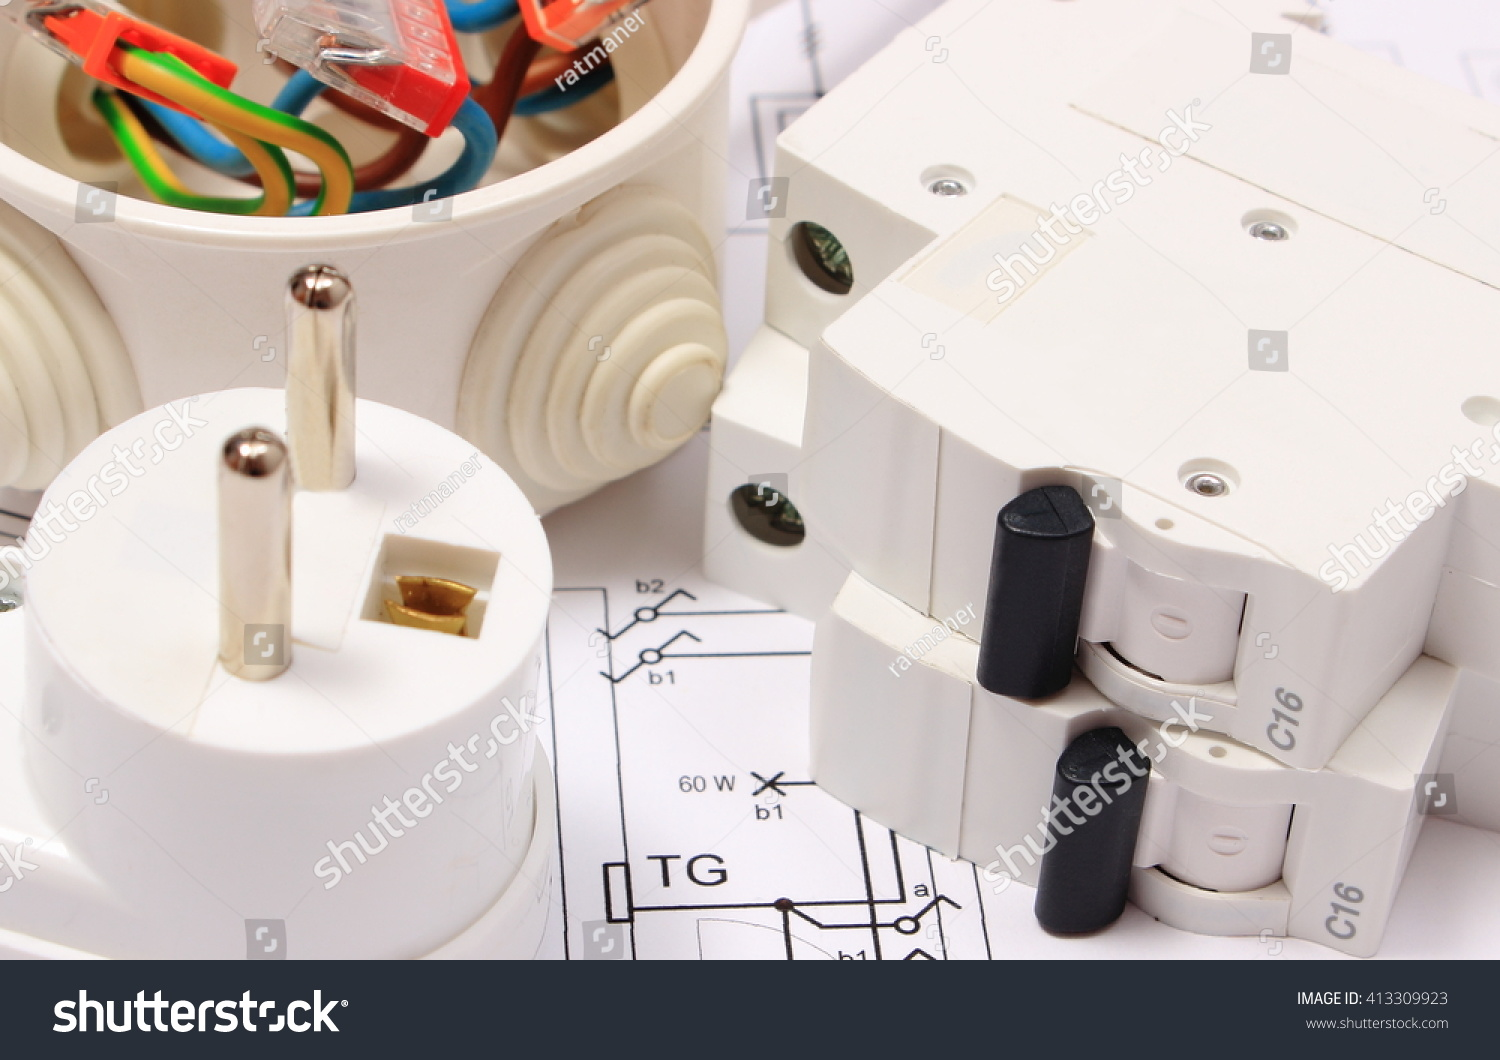 hight resolution of electric fuse and plug copper wire connections in electrical box on construction drawing of house